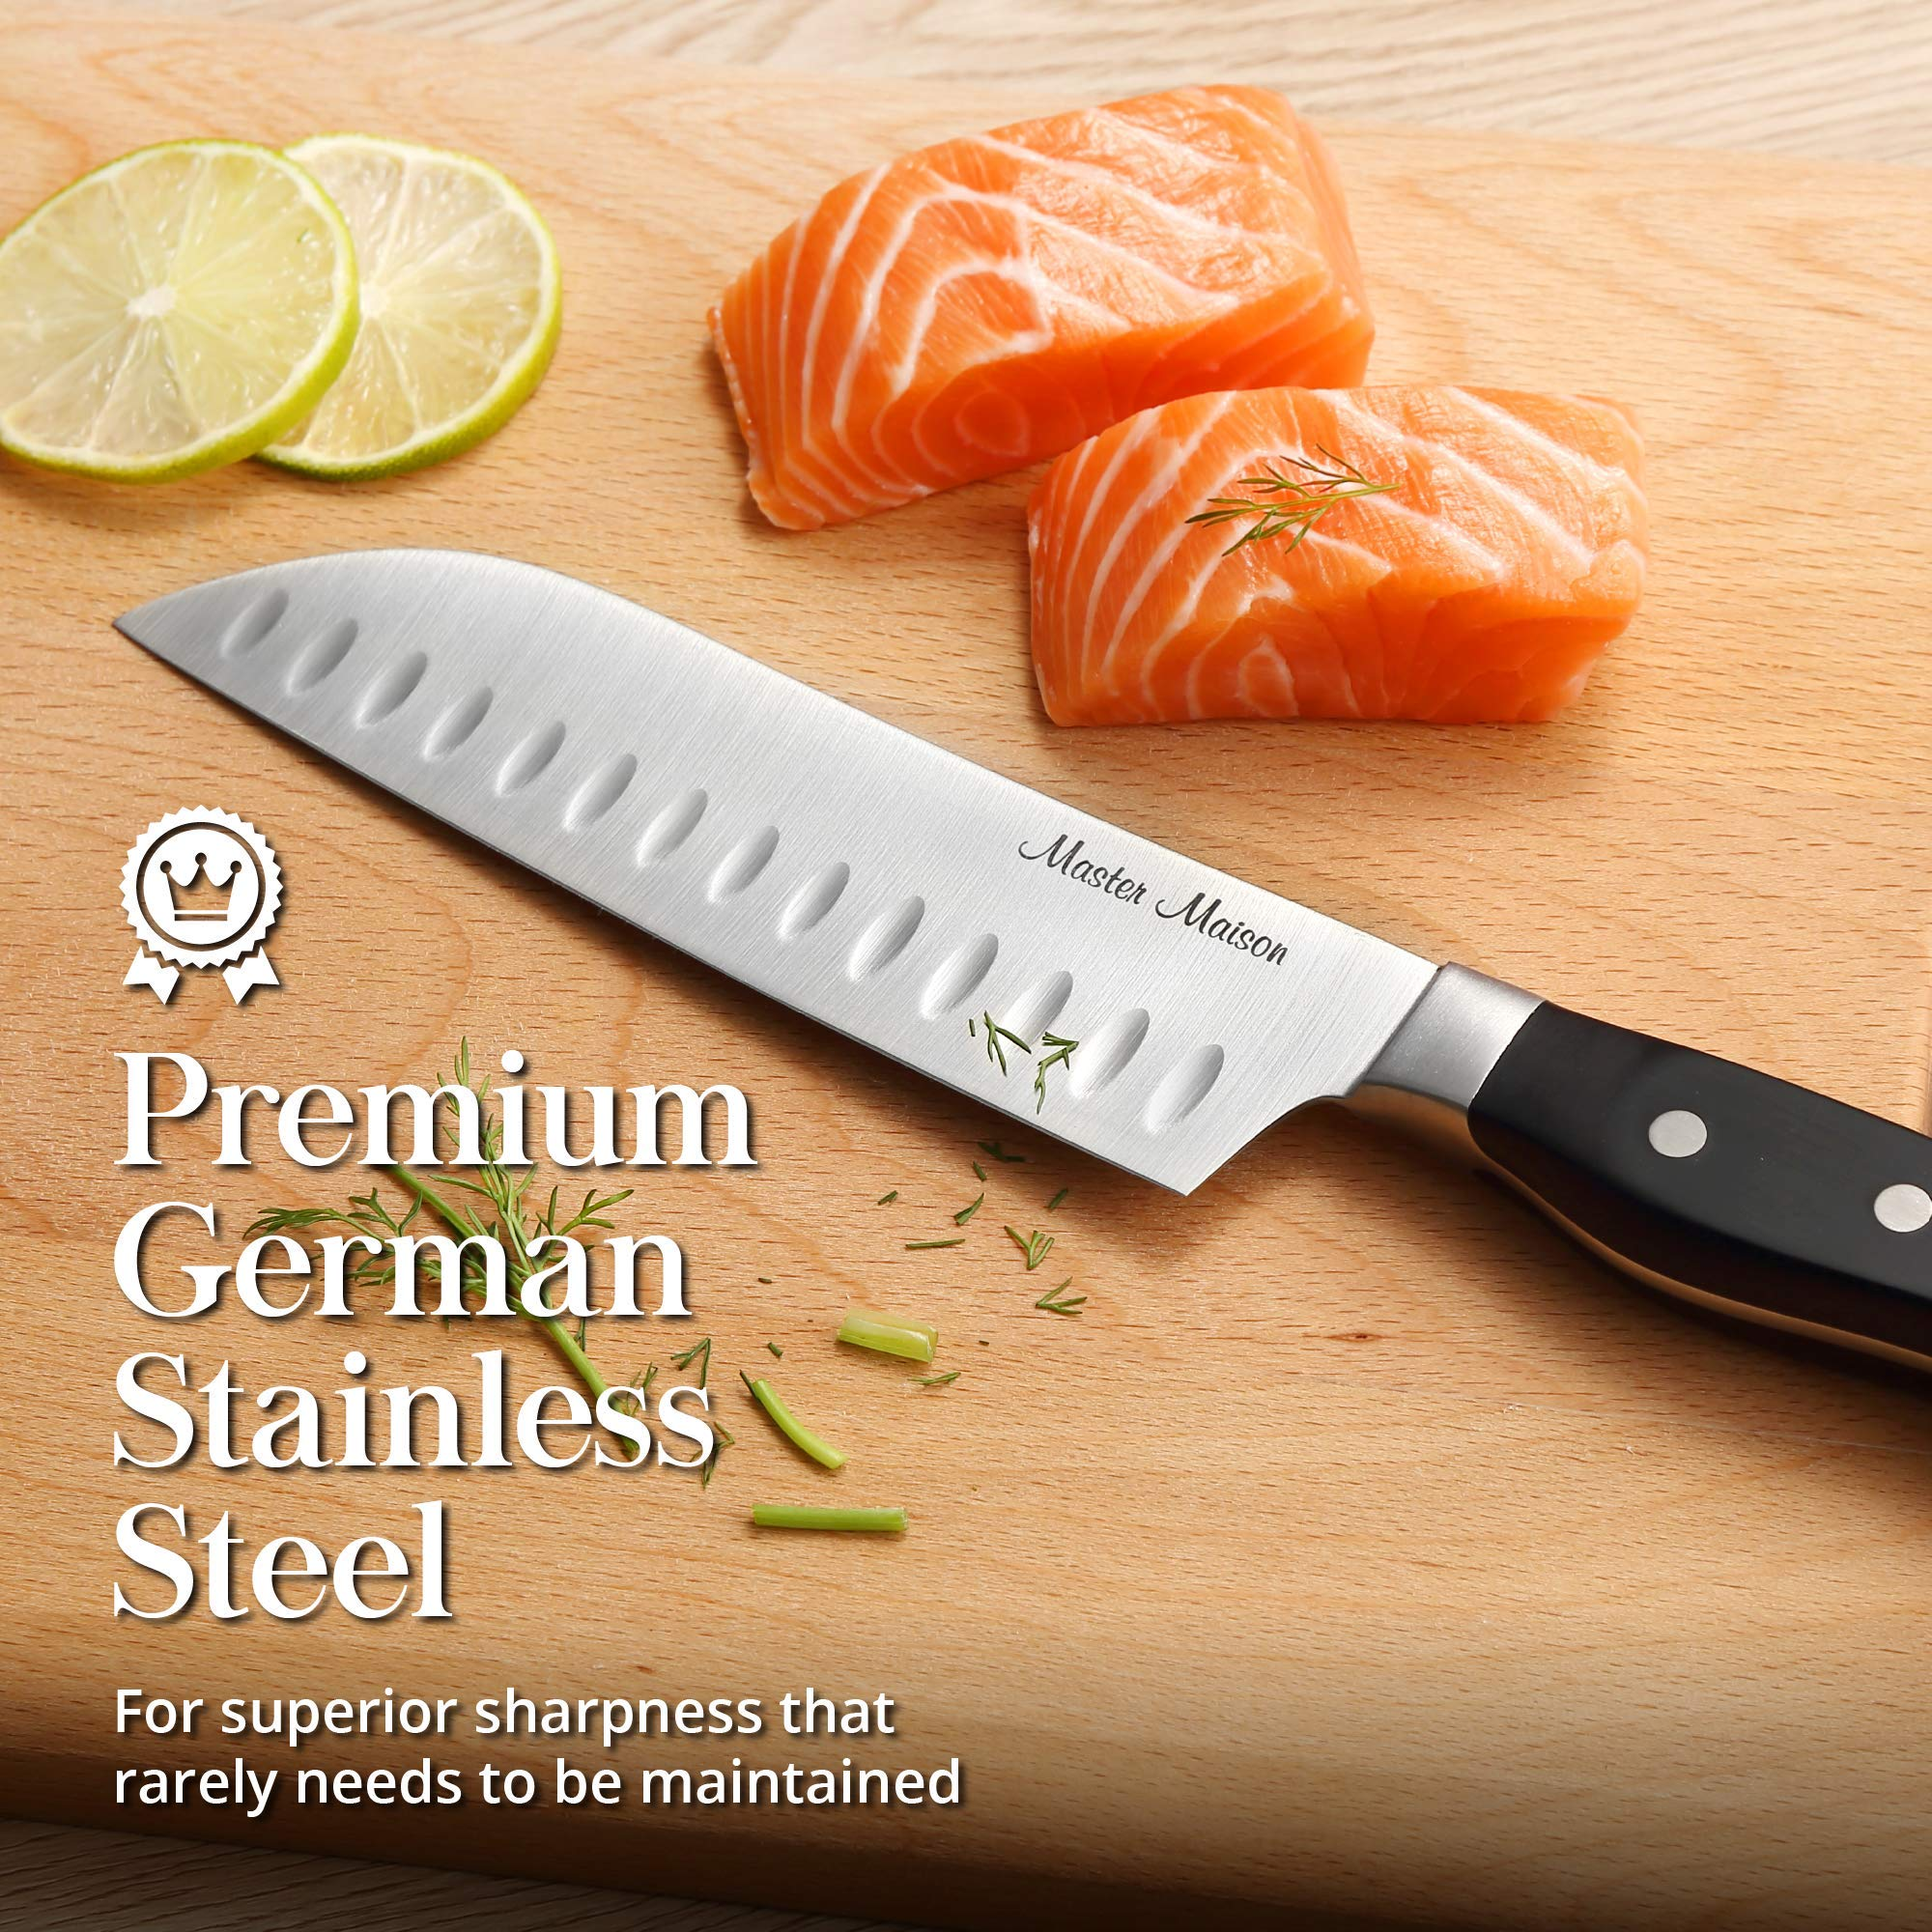 19-Piece Premium Kitchen Knife Set With Wooden Block | Master Maison German Stainless Steel Cutlery With Knife Sharpener & 8 Steak Knives by Master Maison (Image #10)